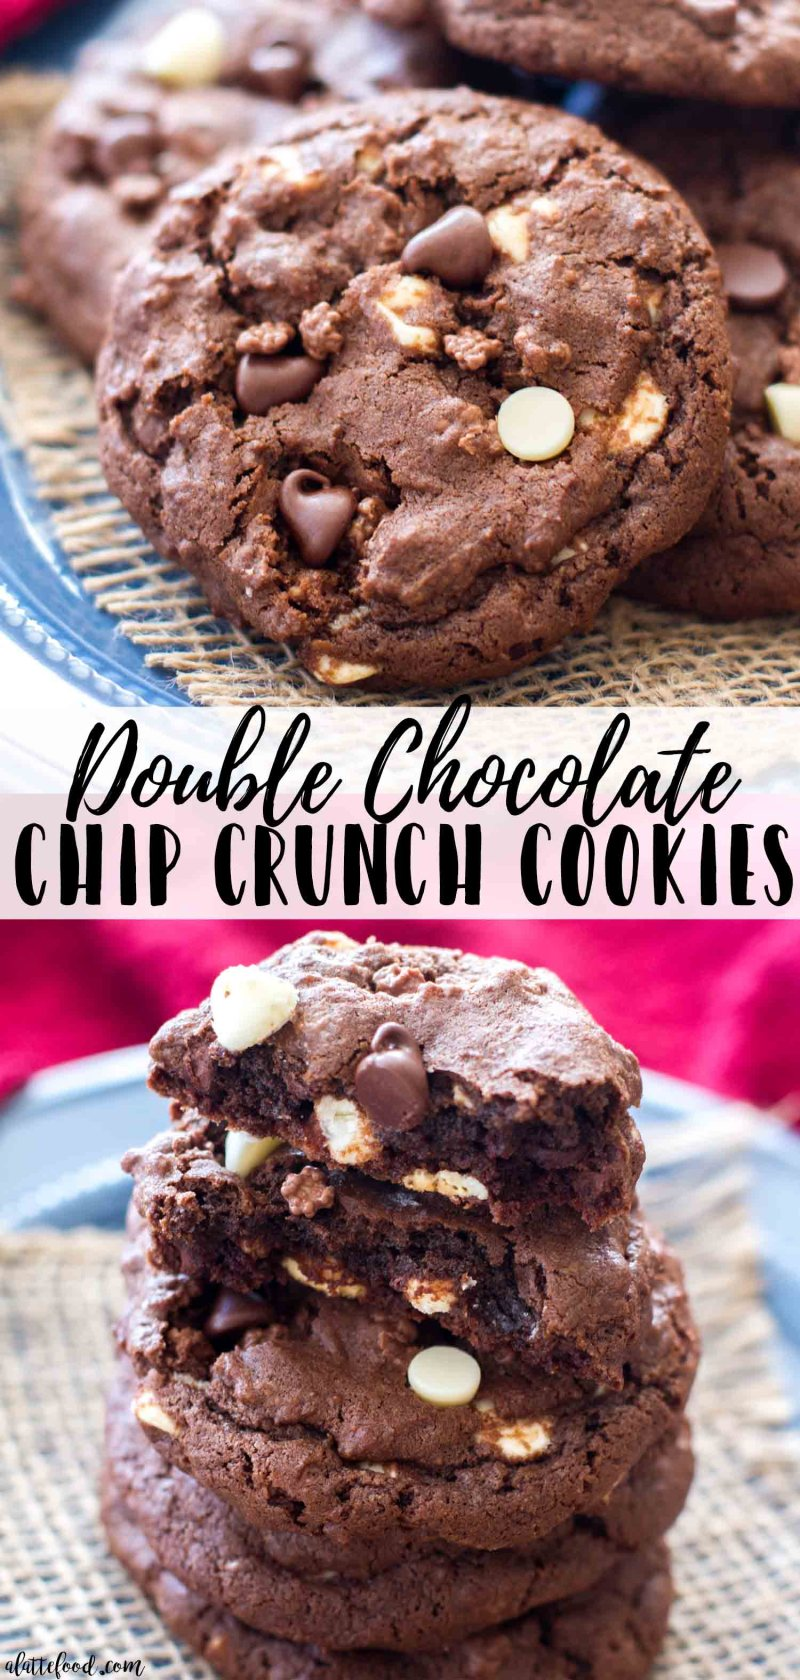 This Double Chocolate Chip Crunch Cookies recipe is rich, fudgy and 100% chocolatey.